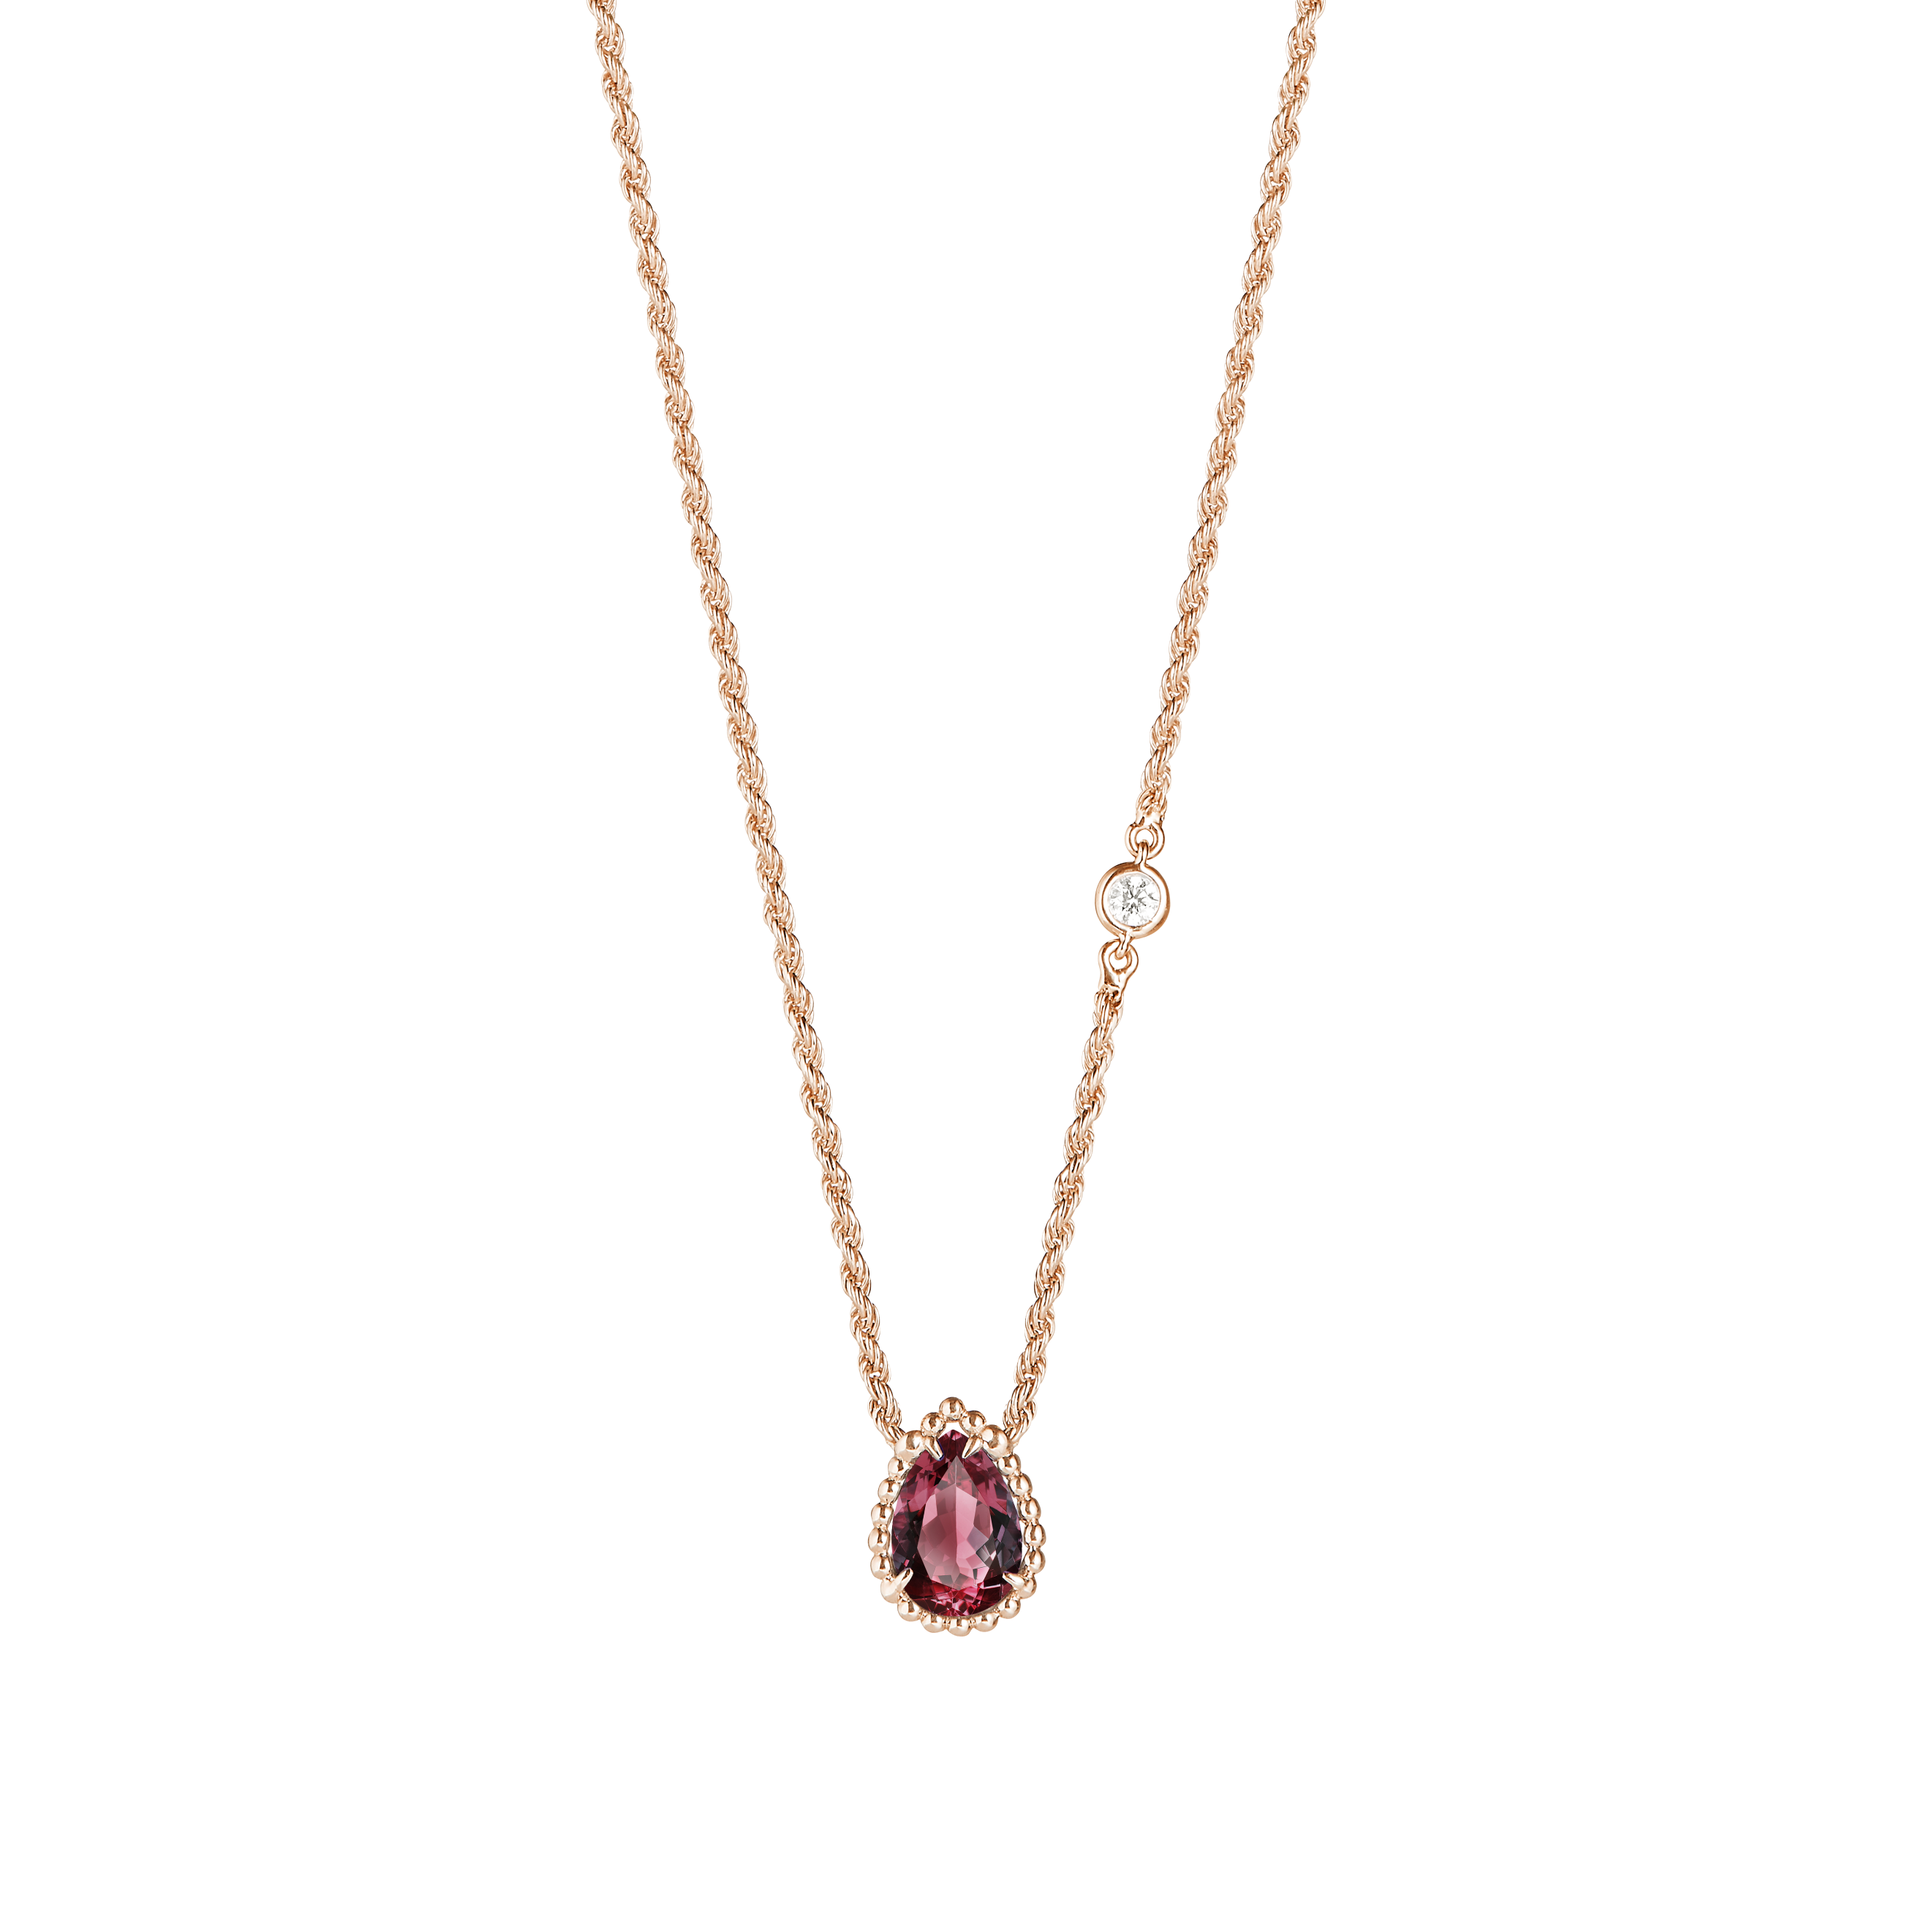 Boucheron Serpent Bohème pendant necklace (XS motif) in pink gold